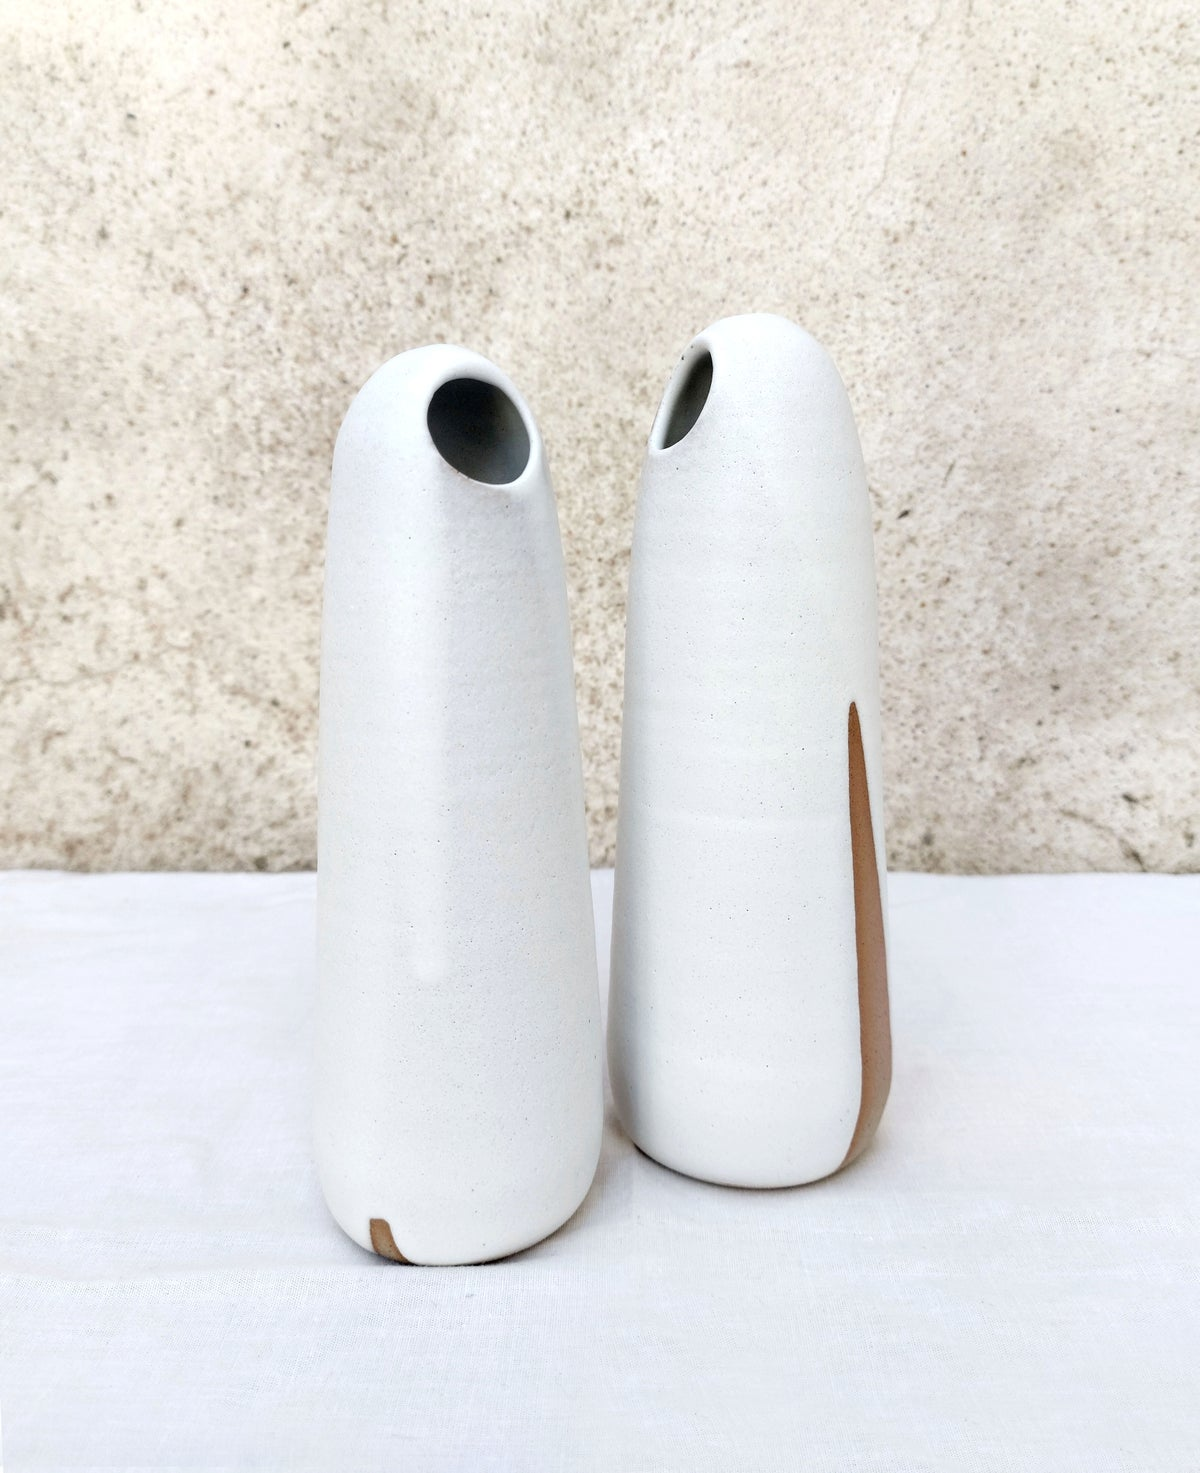 Image of Vases Kaonashi, duo (n3)